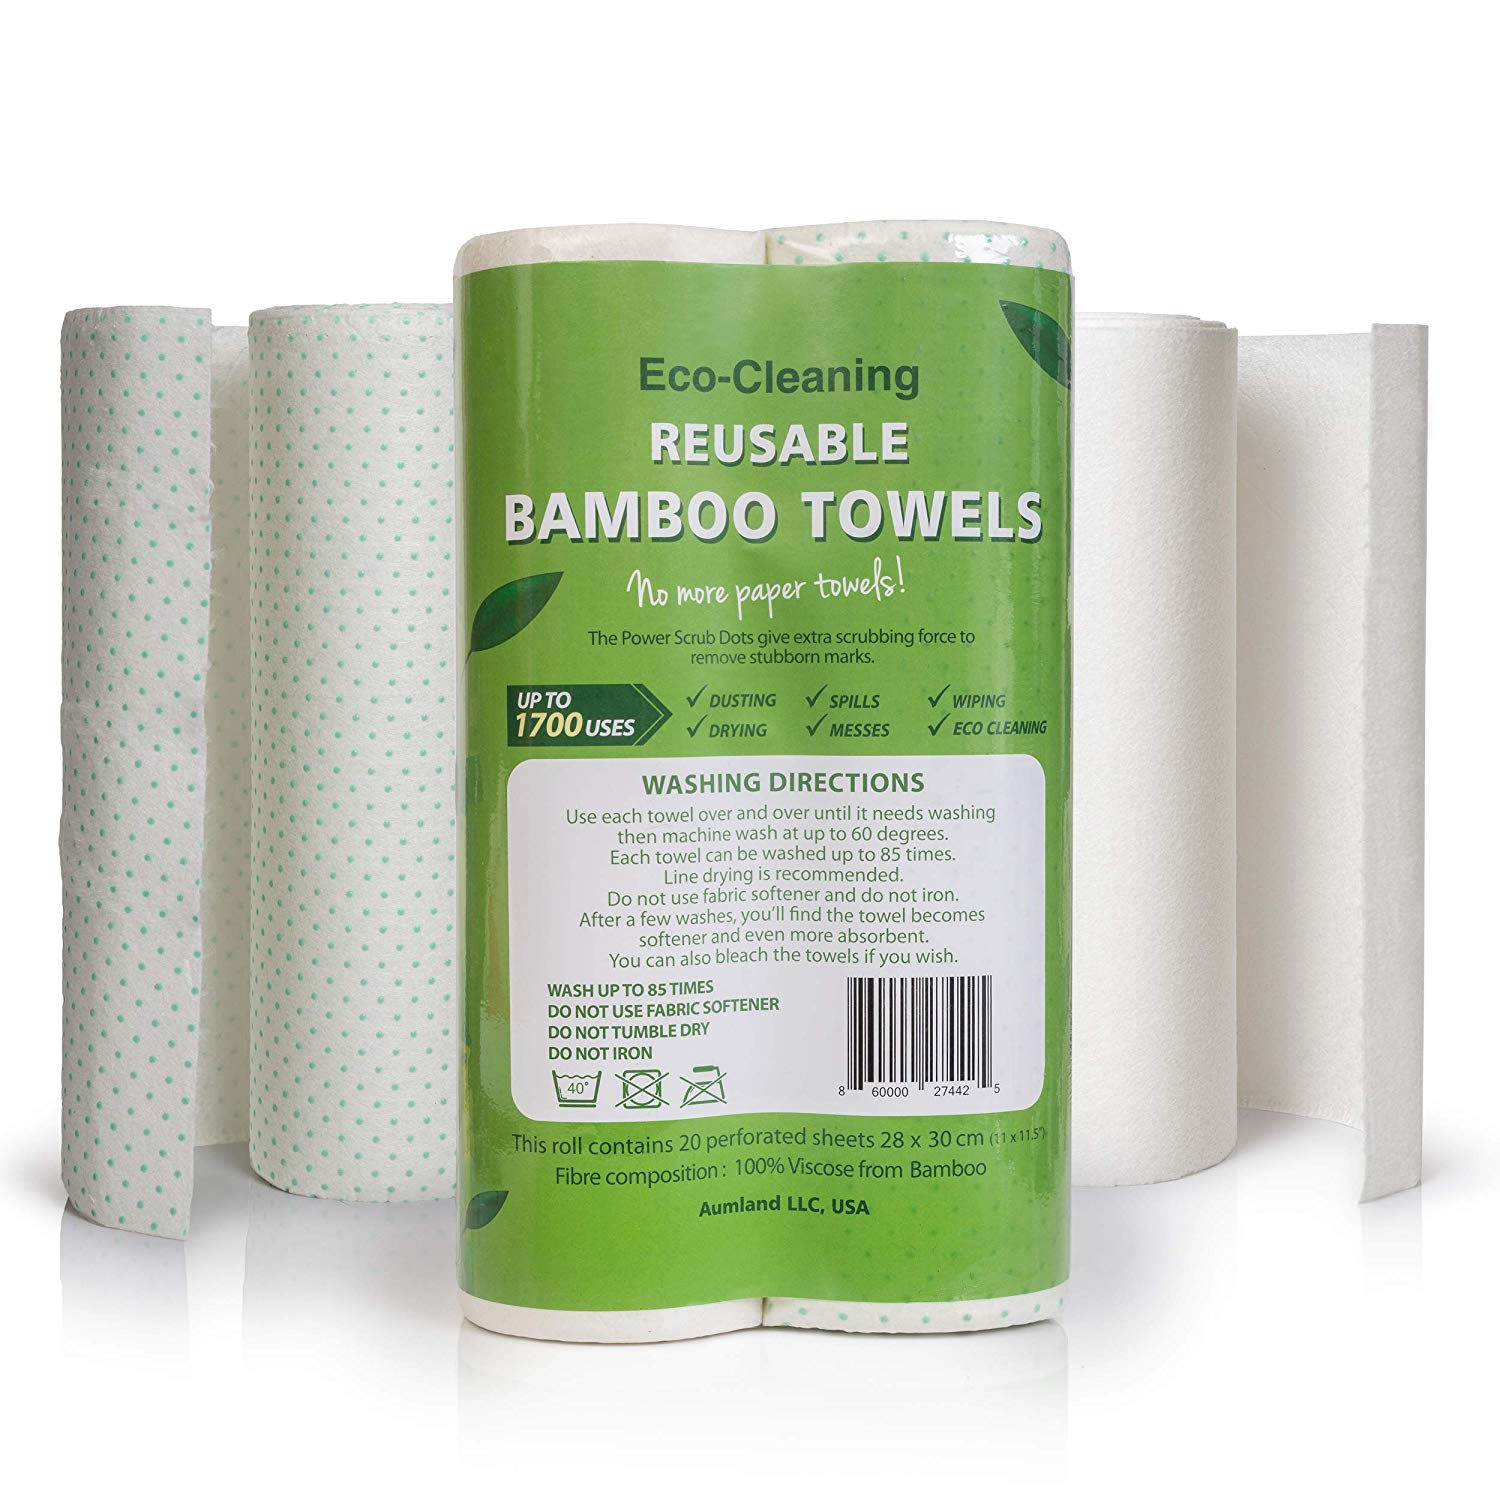 Bamboo reusable paper absorbent towels is the best paper towels for the money